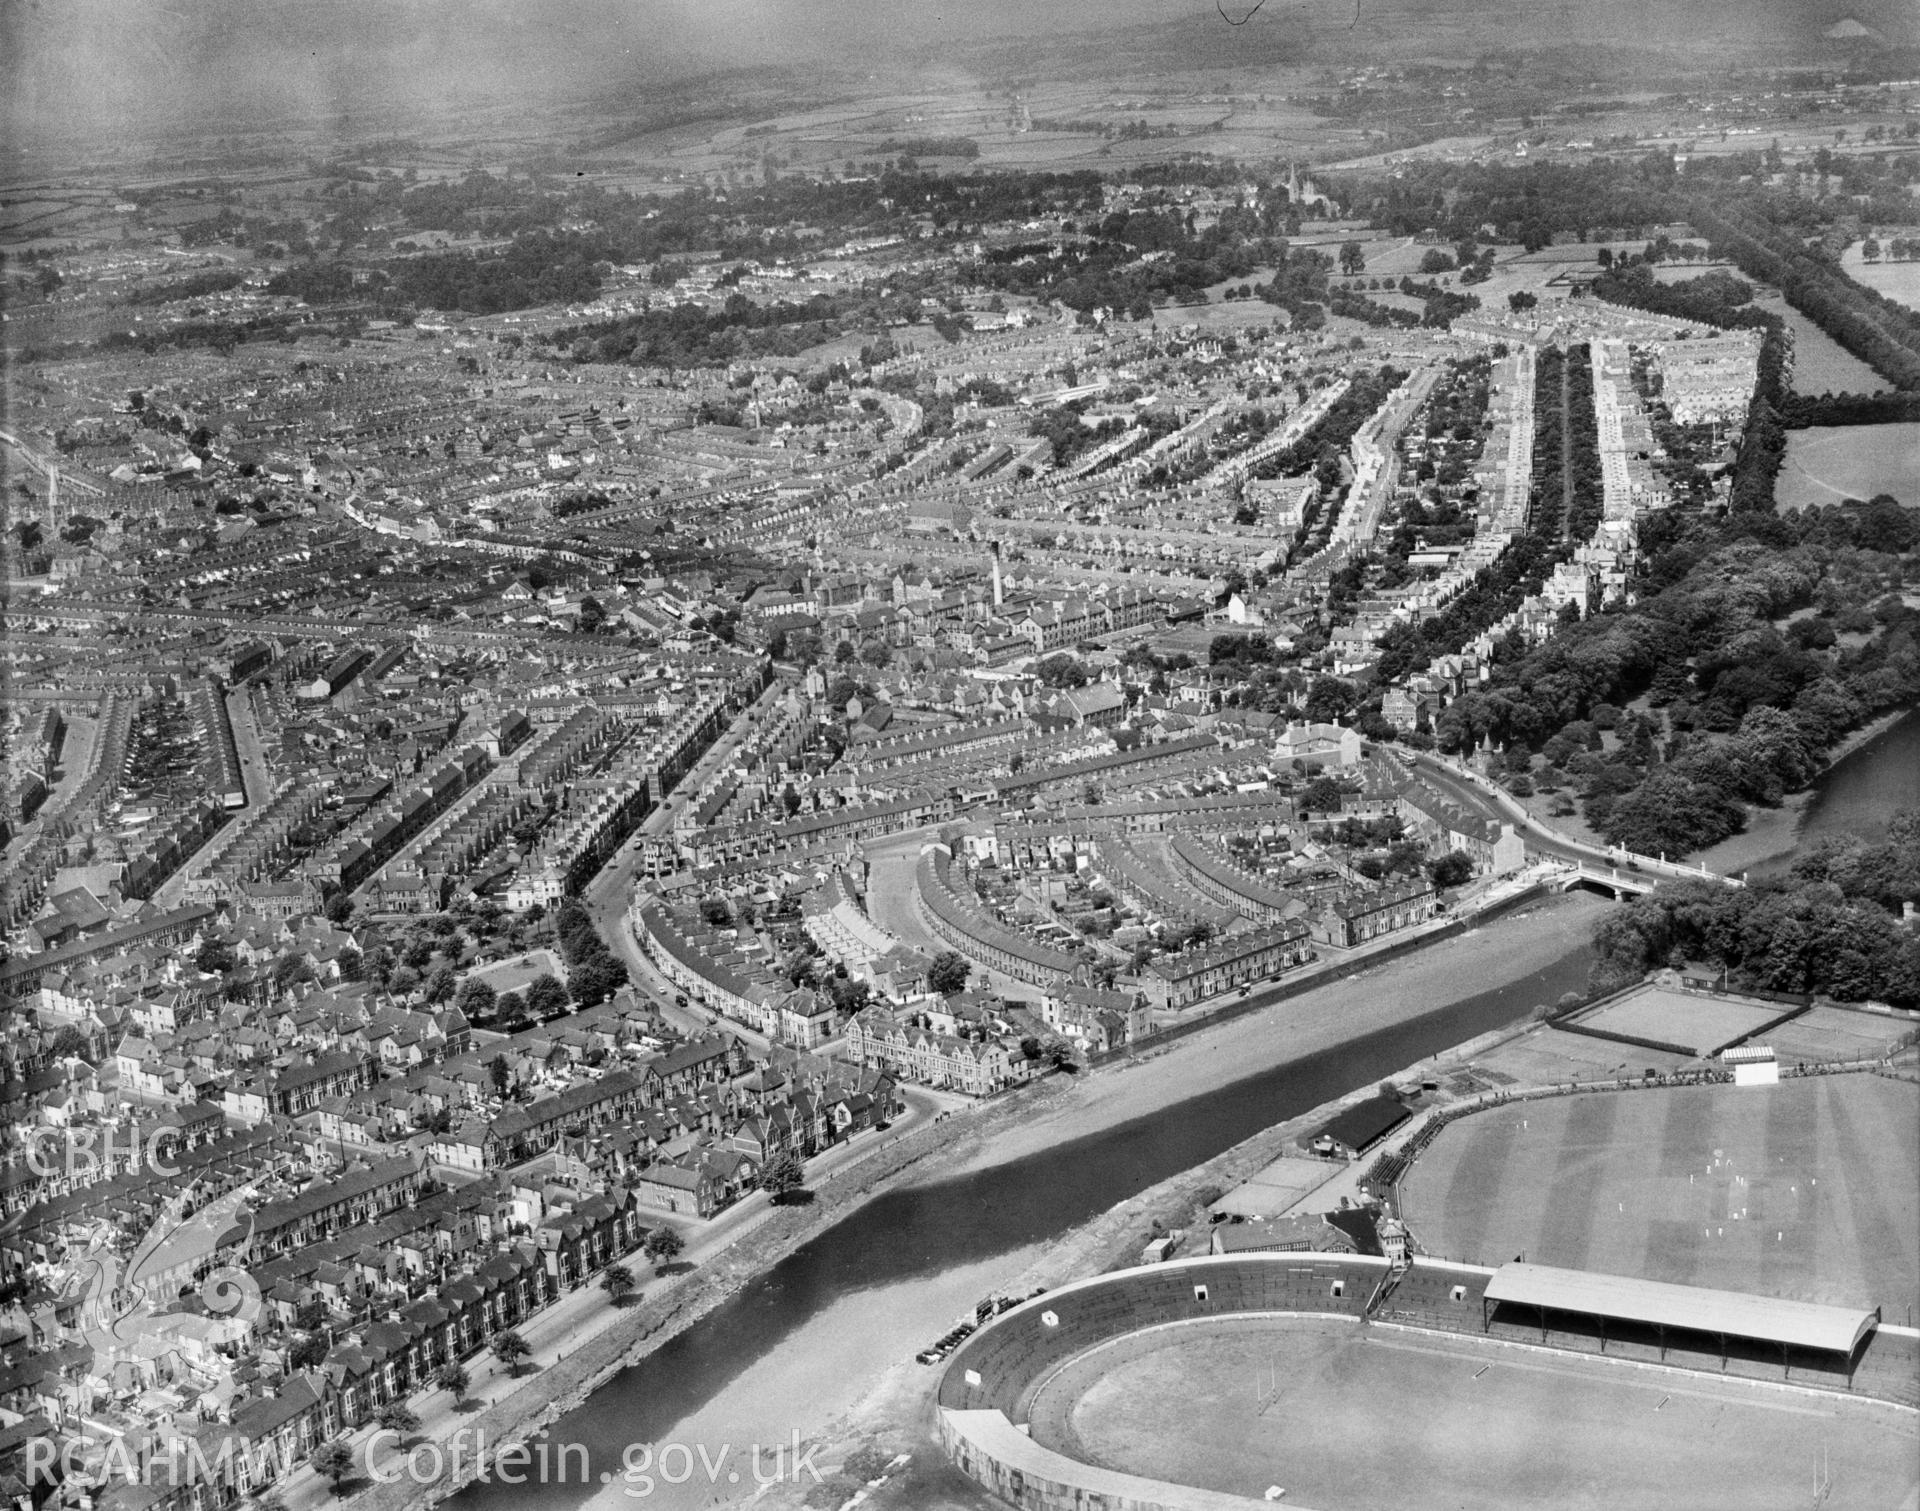 View of the Riverside area of Cardiff showing Cardiff Arms Park and cricket ground. Oblique aerial photograph.